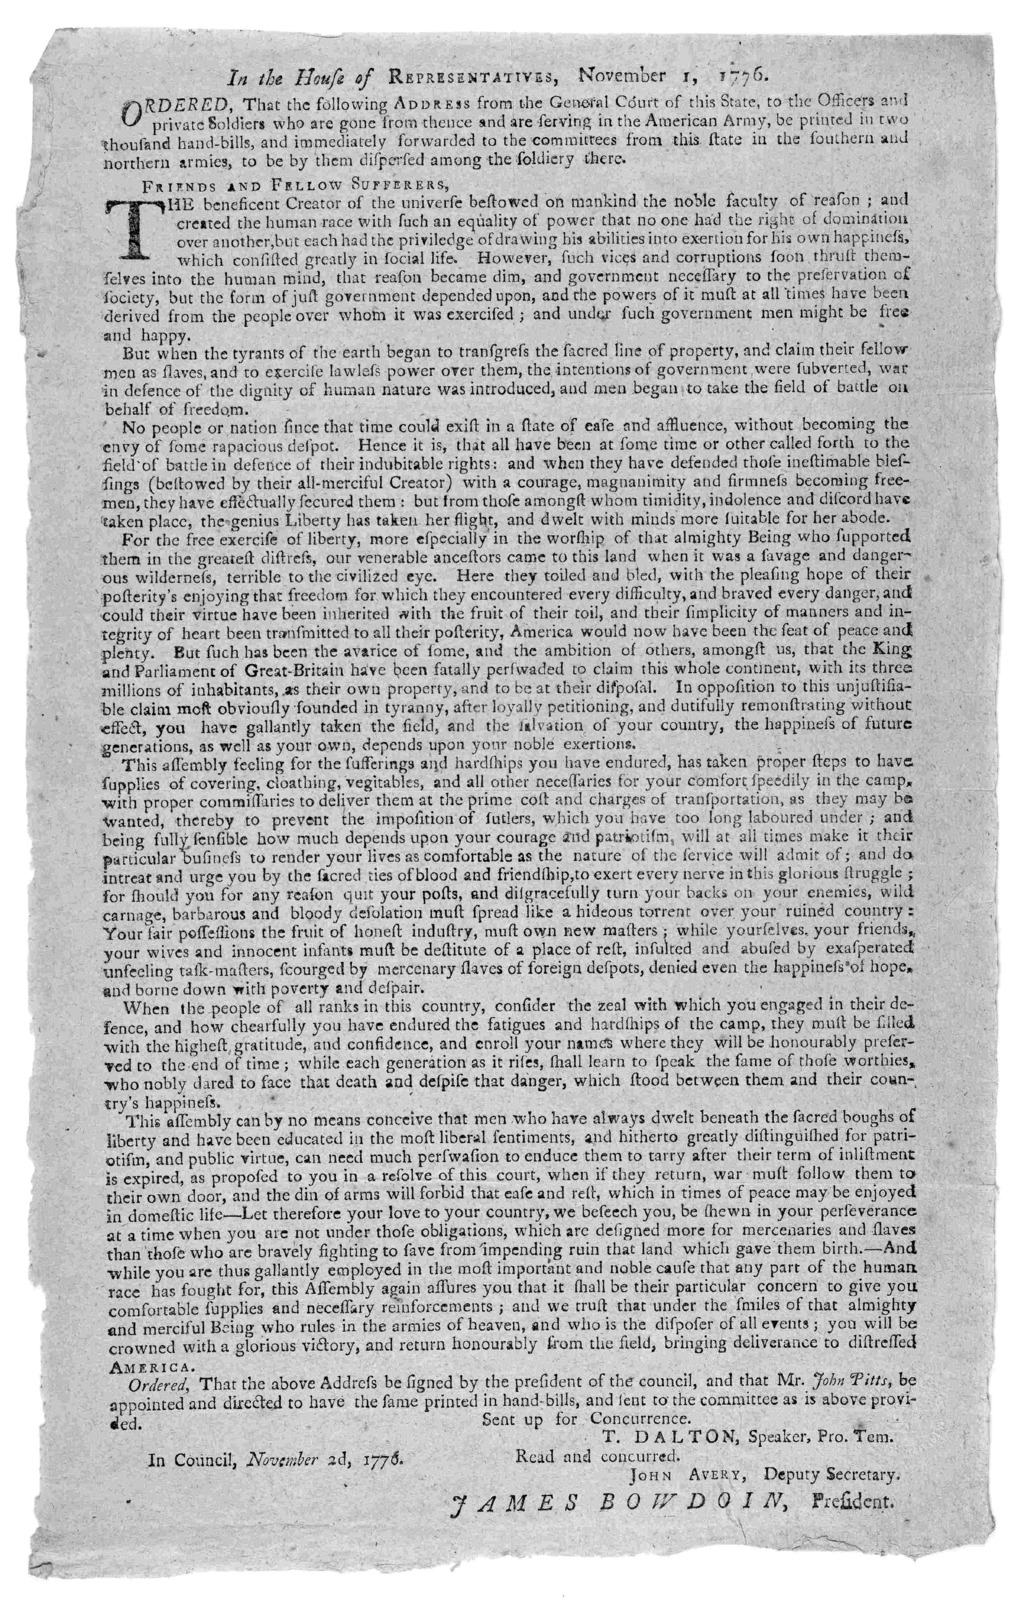 In the House or representatives, November 1, 1776. Ordered, that the following address from the General court of this state, to the officers and private soldiers who are gone from thence and are serving in the American army, be printed in two th